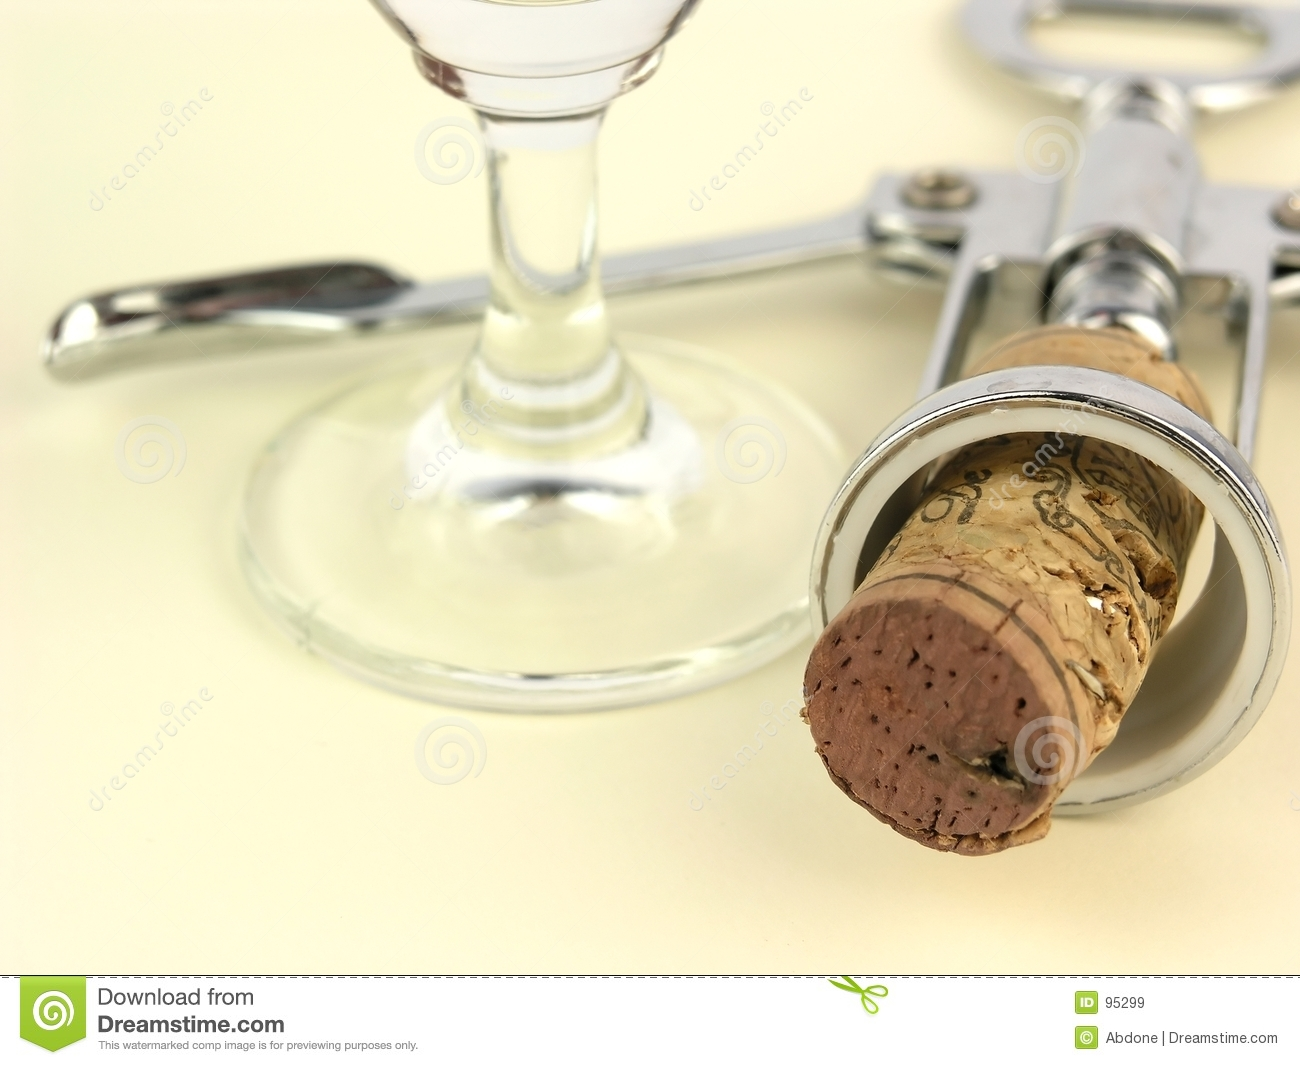 Cork and empty glass